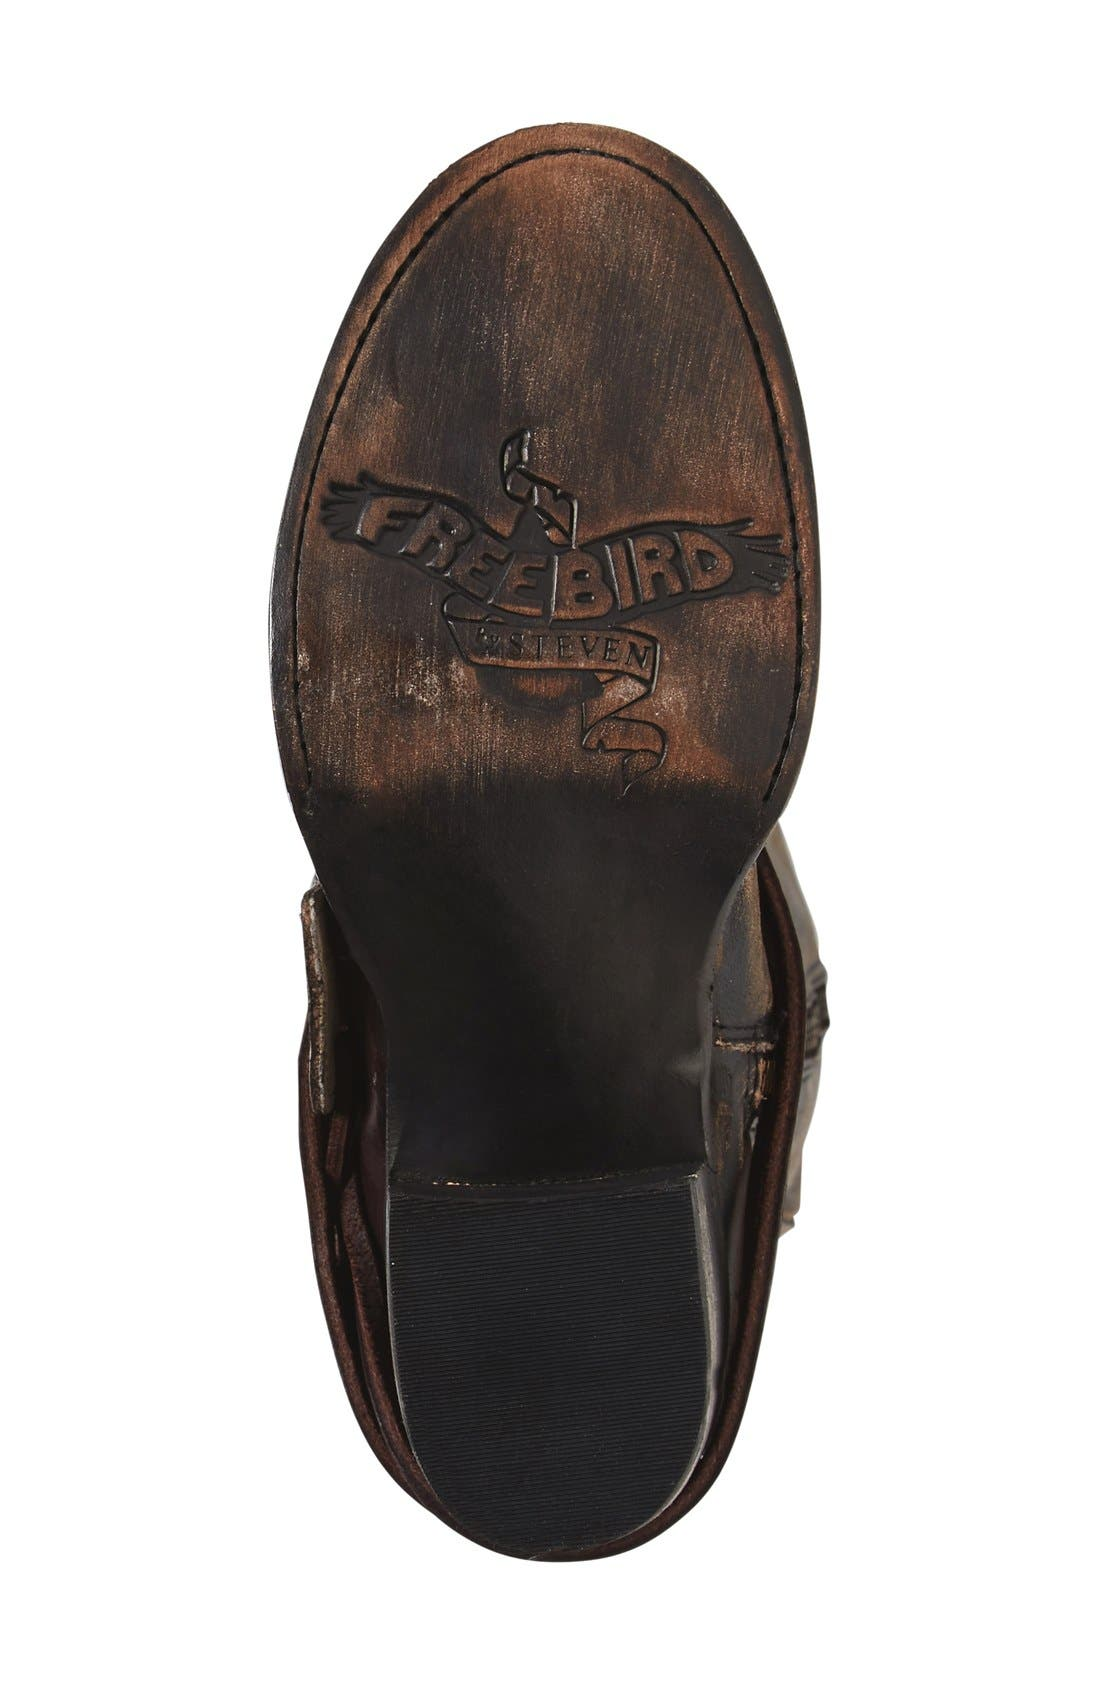 'Cash' Tall Boot,                             Alternate thumbnail 4, color,                             Brown Multi Leather